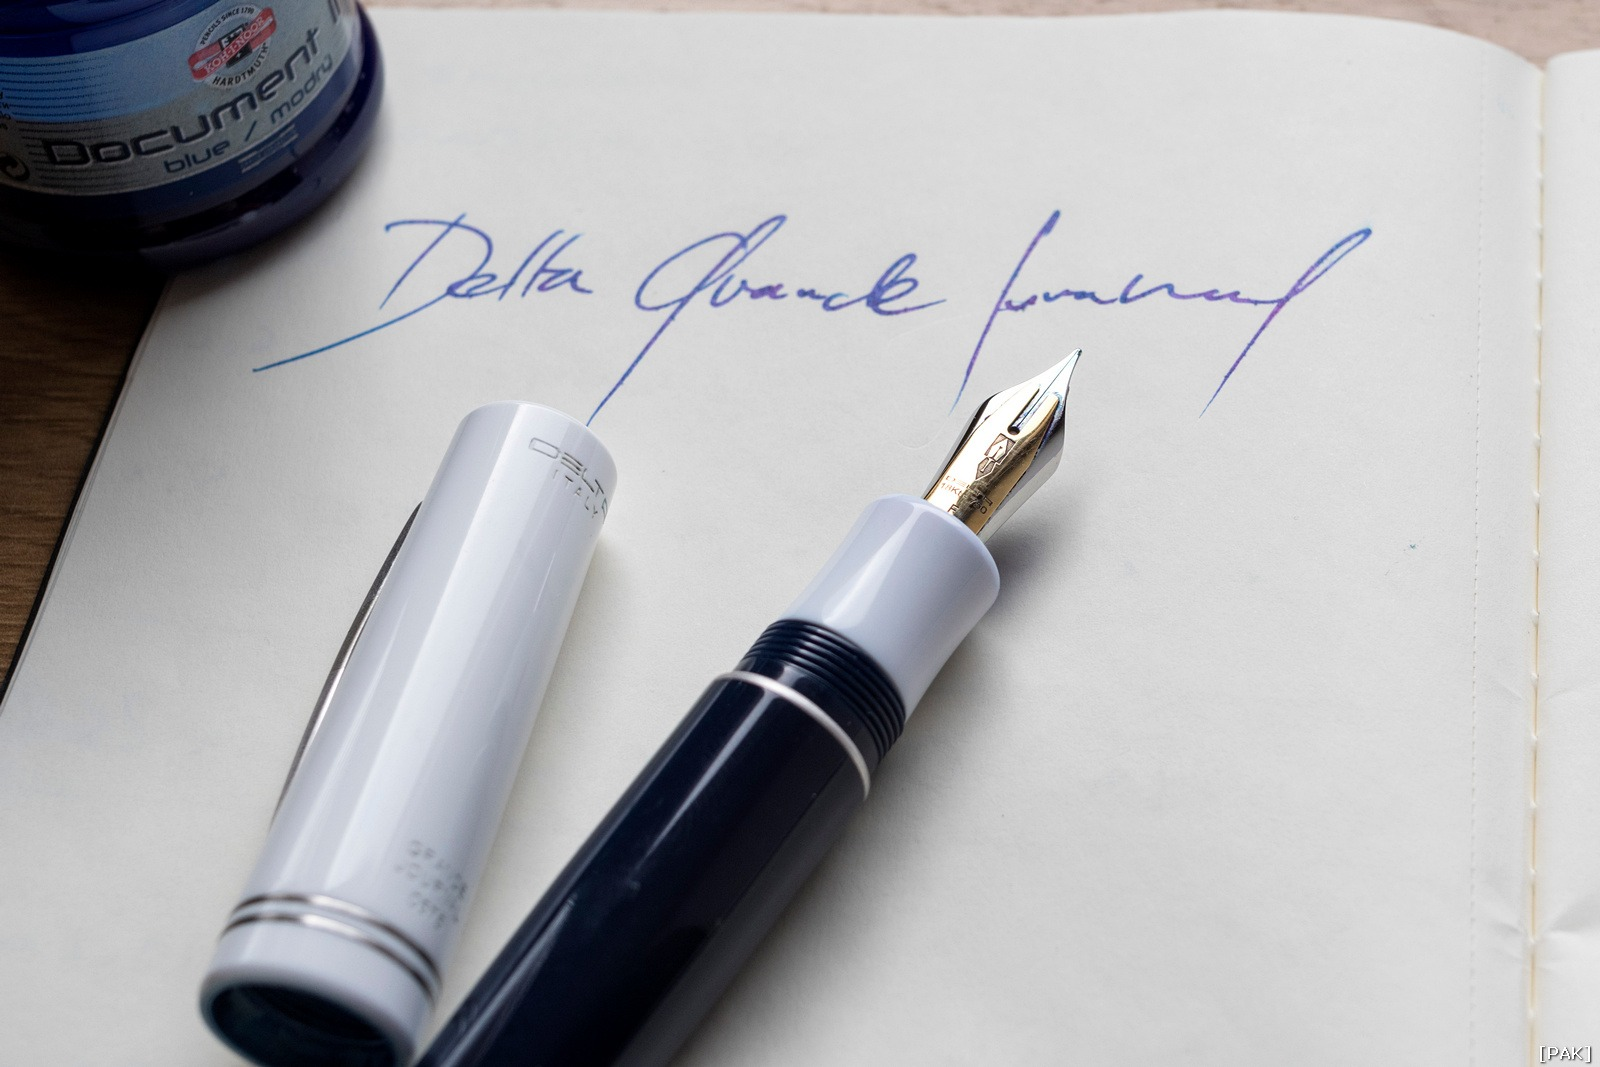 Delta Grande Journal Fusion nib